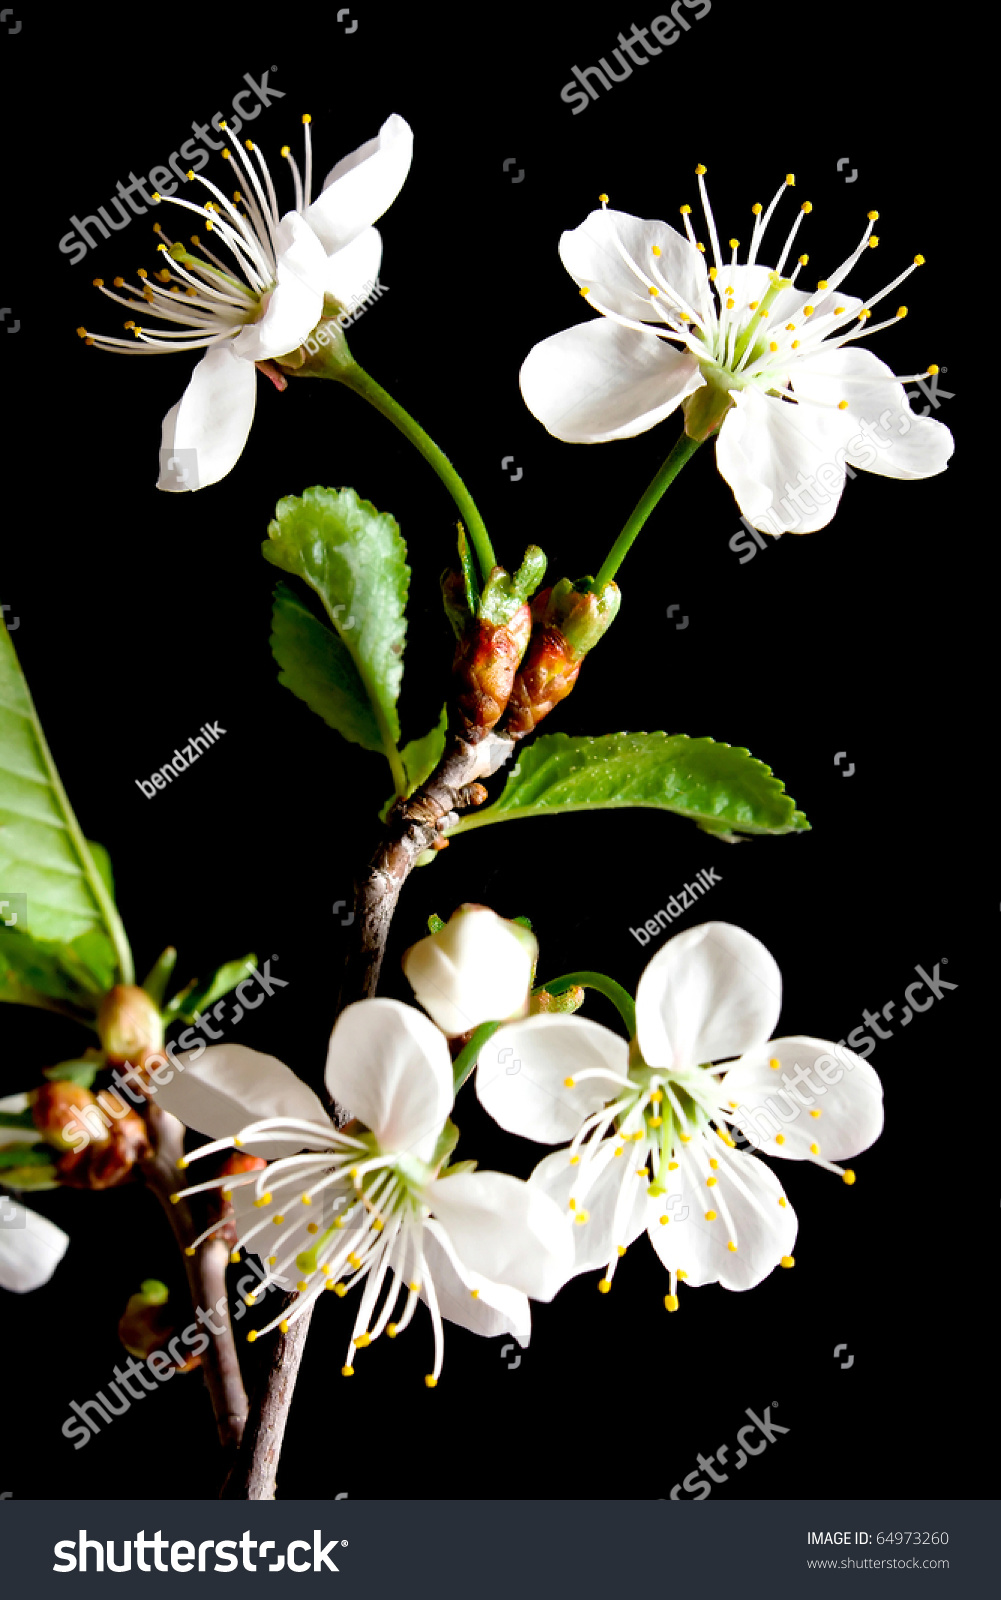 Beautiful flowers blooming cherry on black stock photo 64973260 beautiful flowers blooming cherry on a black background izmirmasajfo Images